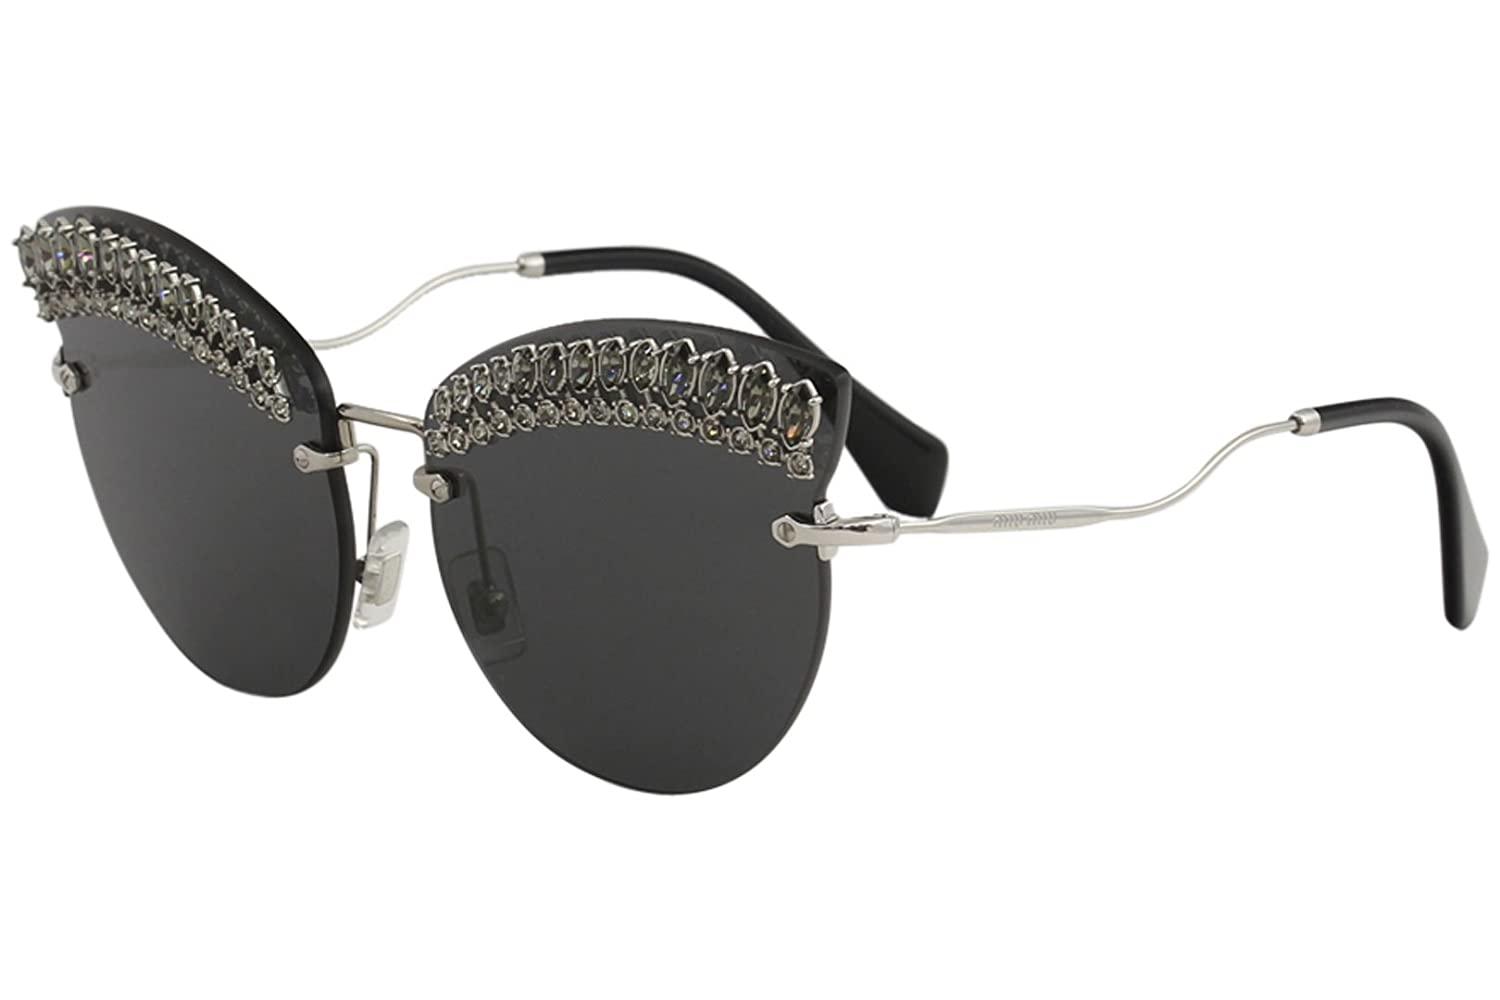 01293fb34574 Amazon.com  Miu Miu Women s Crystal Cat Eye Sunglasses